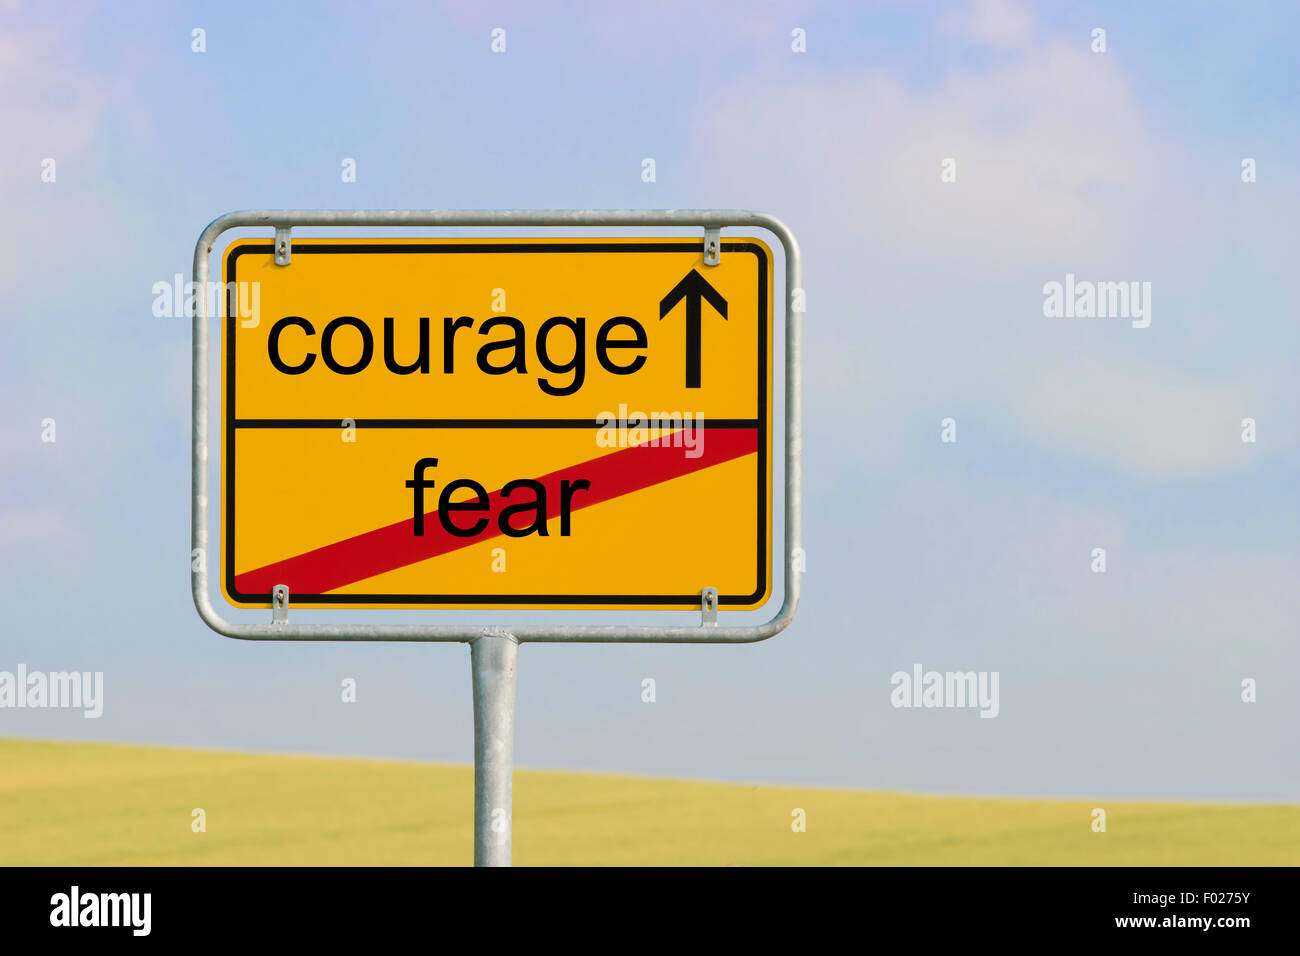 Yellow town sign with text 'fear courage' - Stock Image